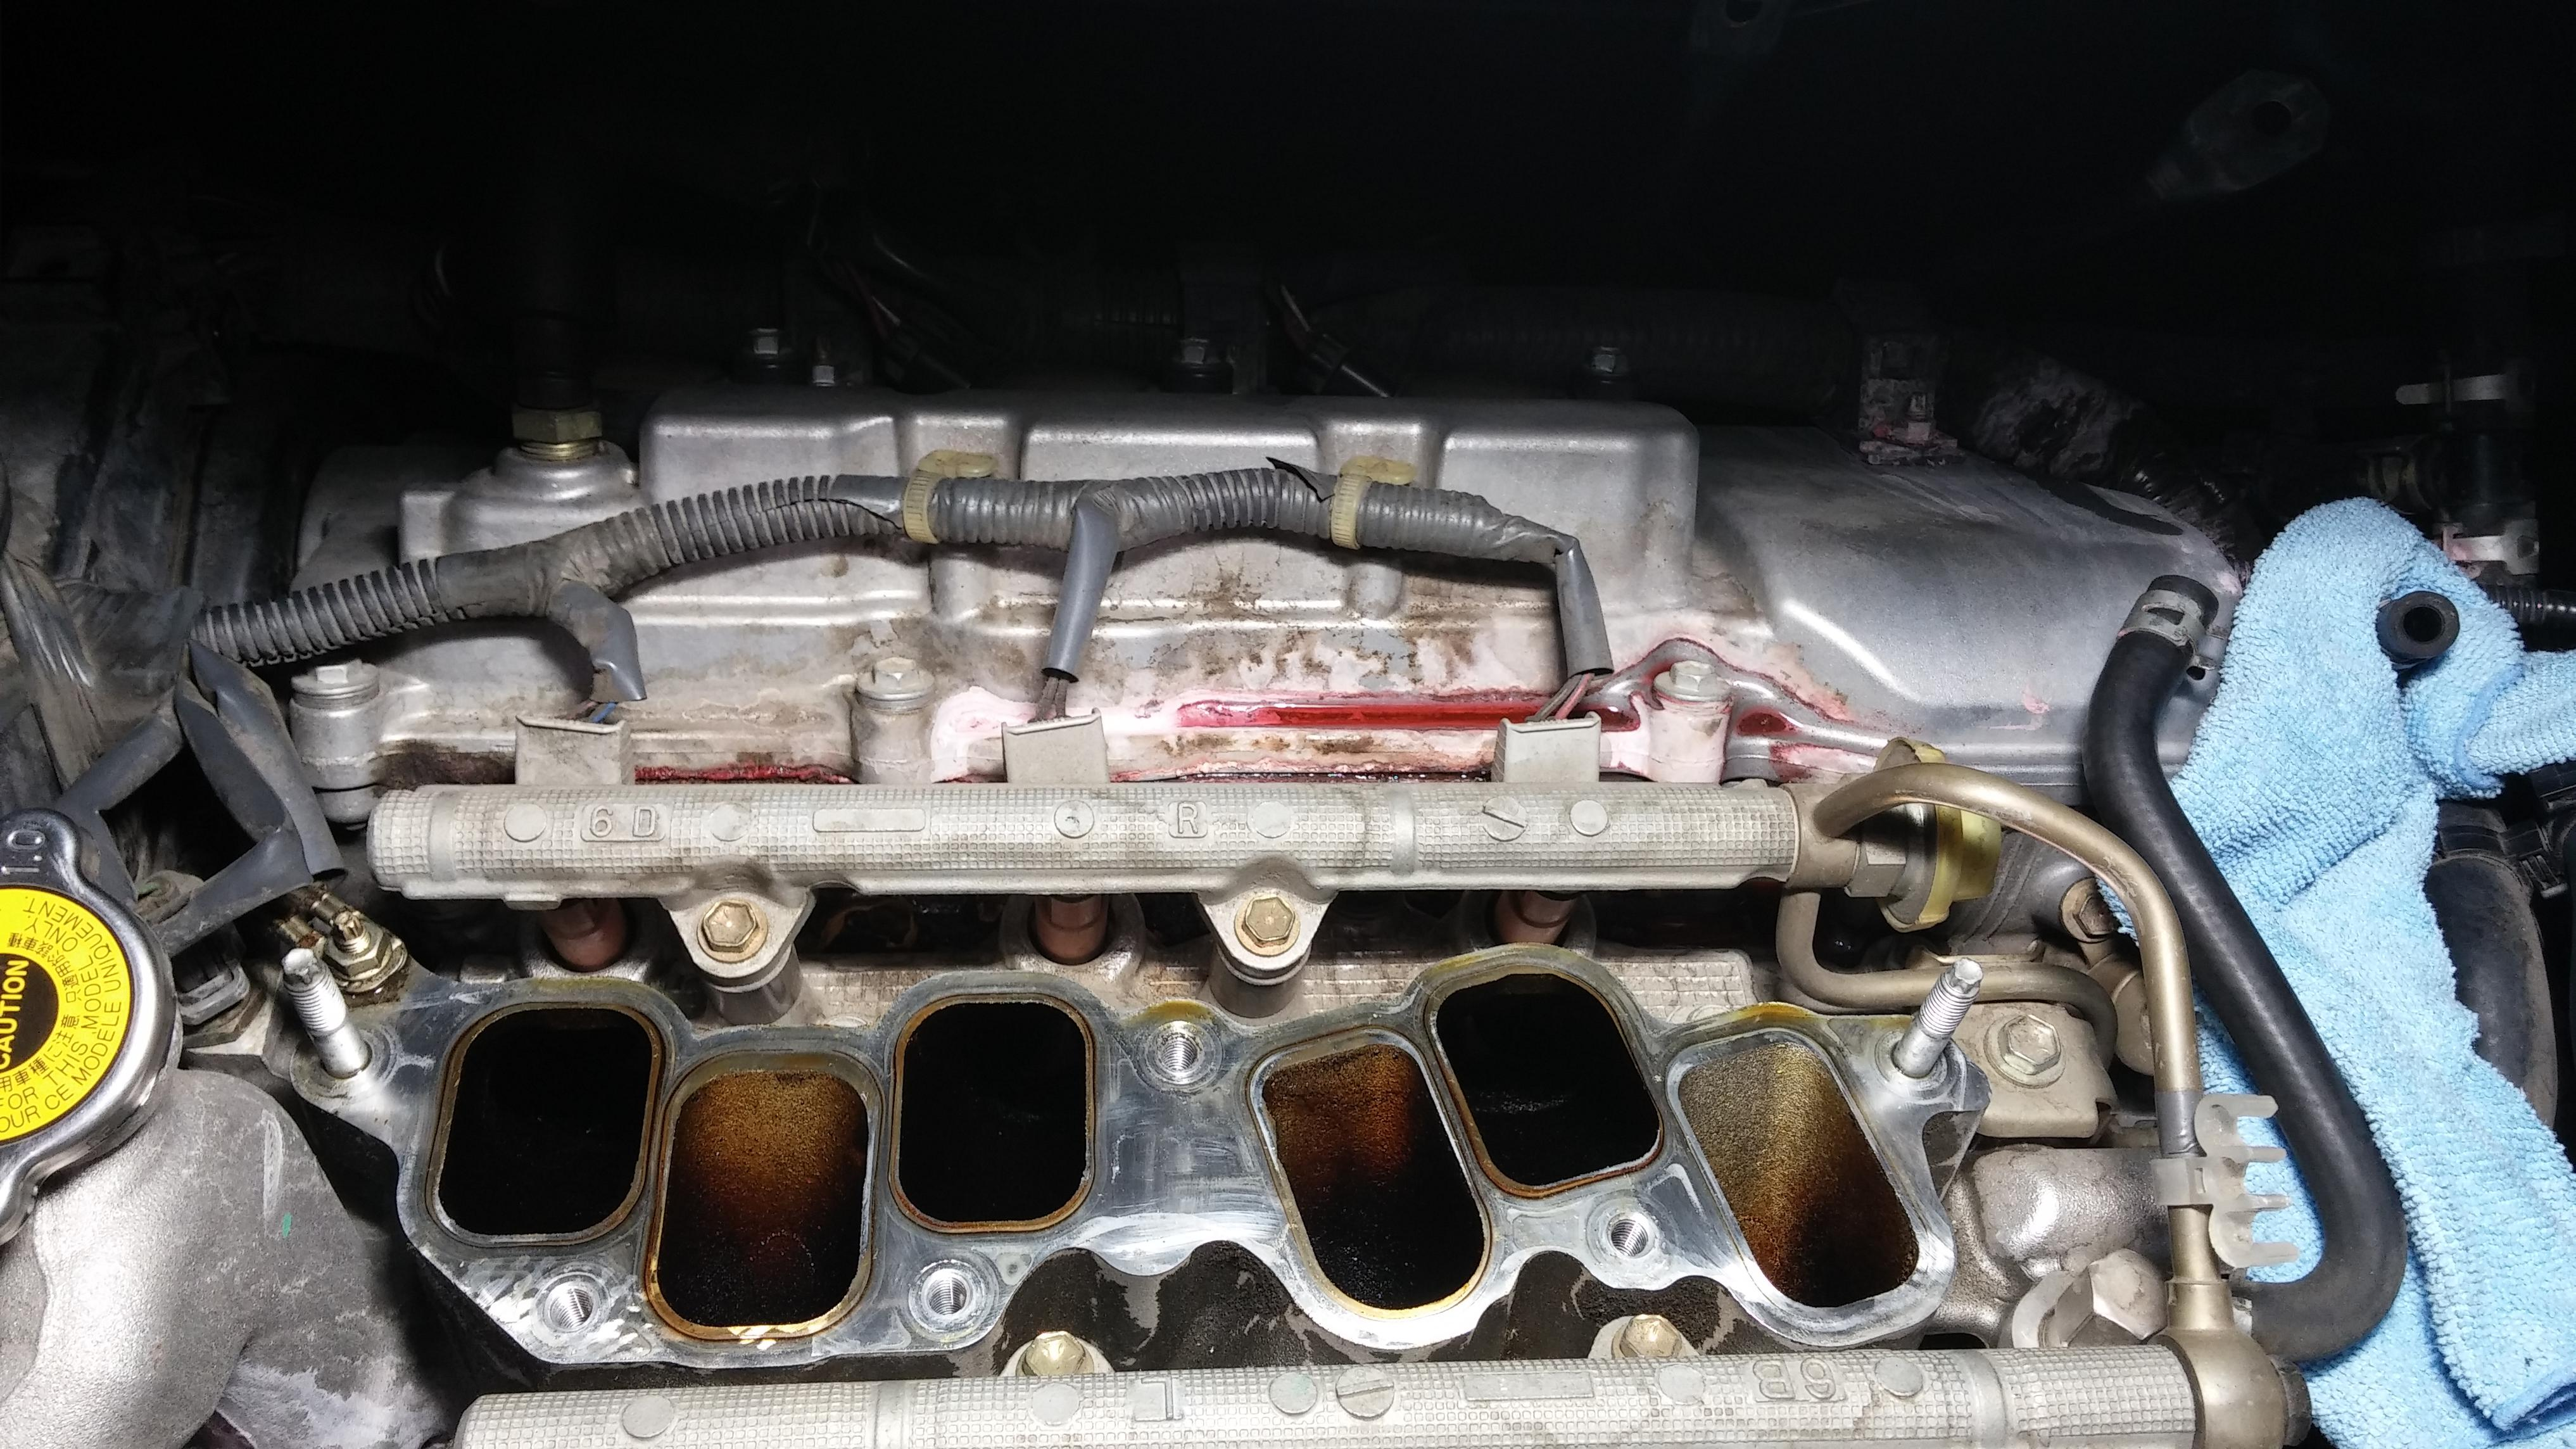 2004 Siena Coolant Leak Pic Included Toyota Nation Forum Lexus Click Image For Larger Version Name 11 Views 434 Size 10089